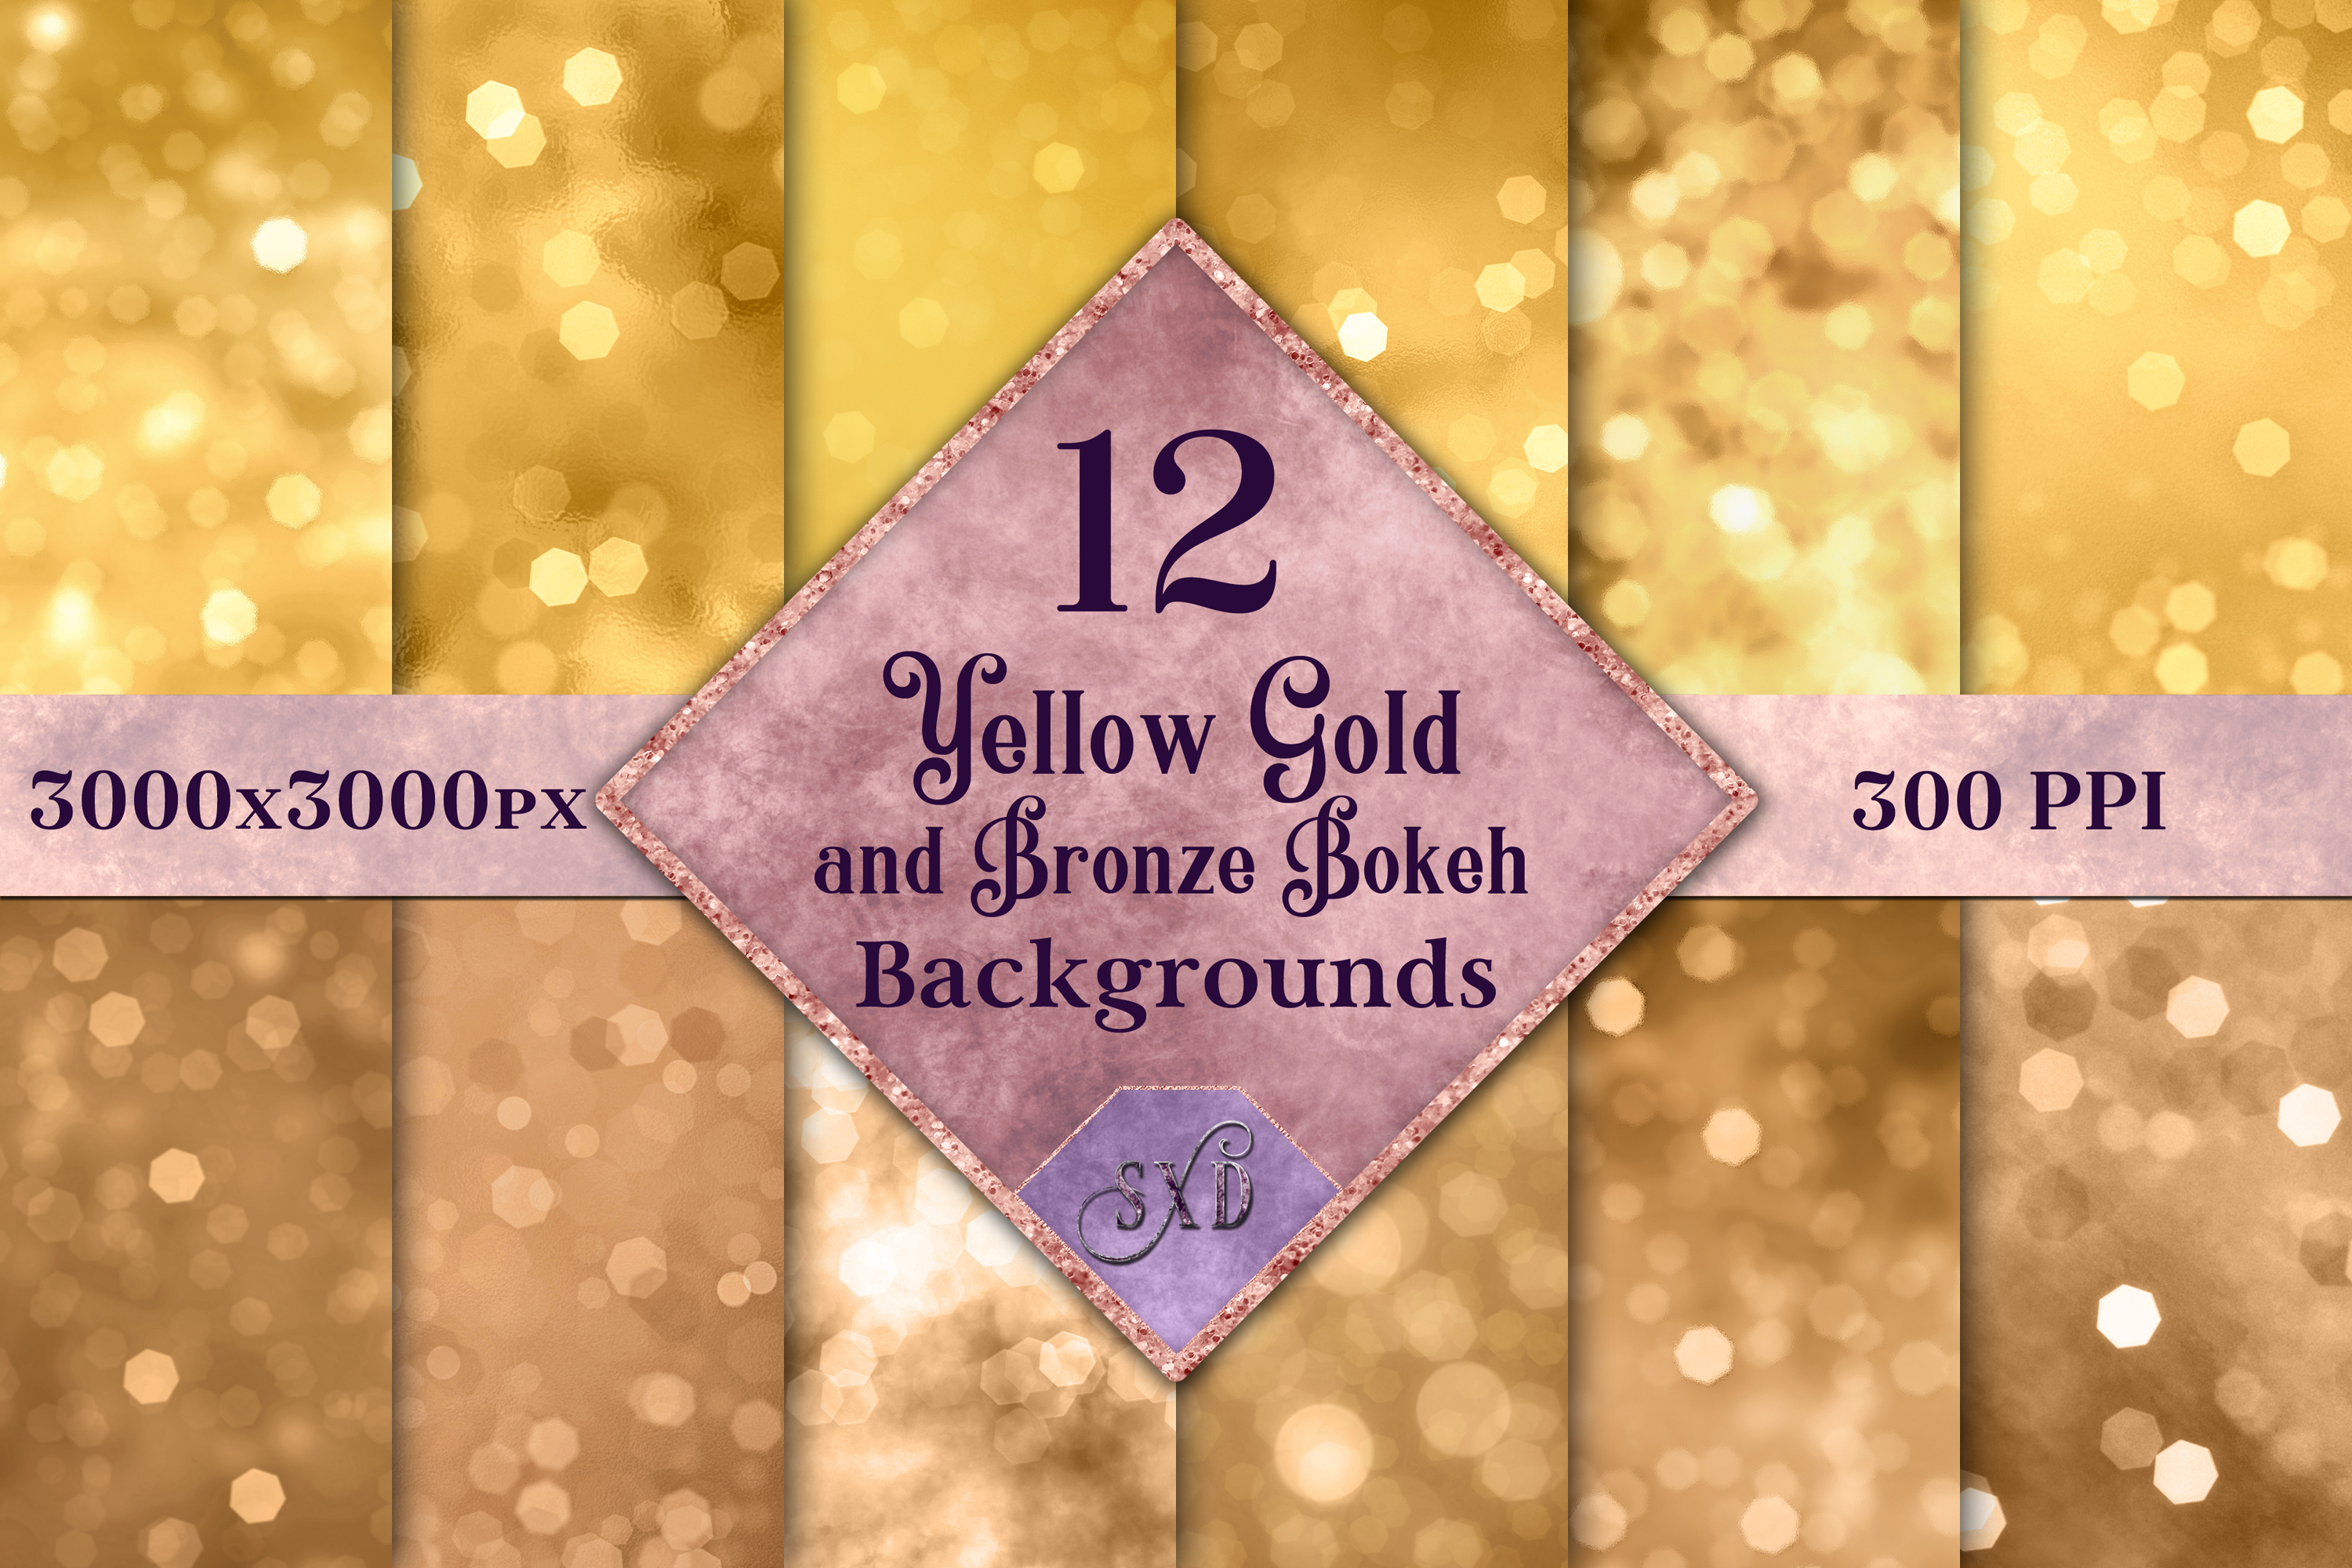 黄金青铜玻璃效果数码纸纹理 Yellow Gold and Bronze Bokeh Backgrounds – 12 Image Textures插图